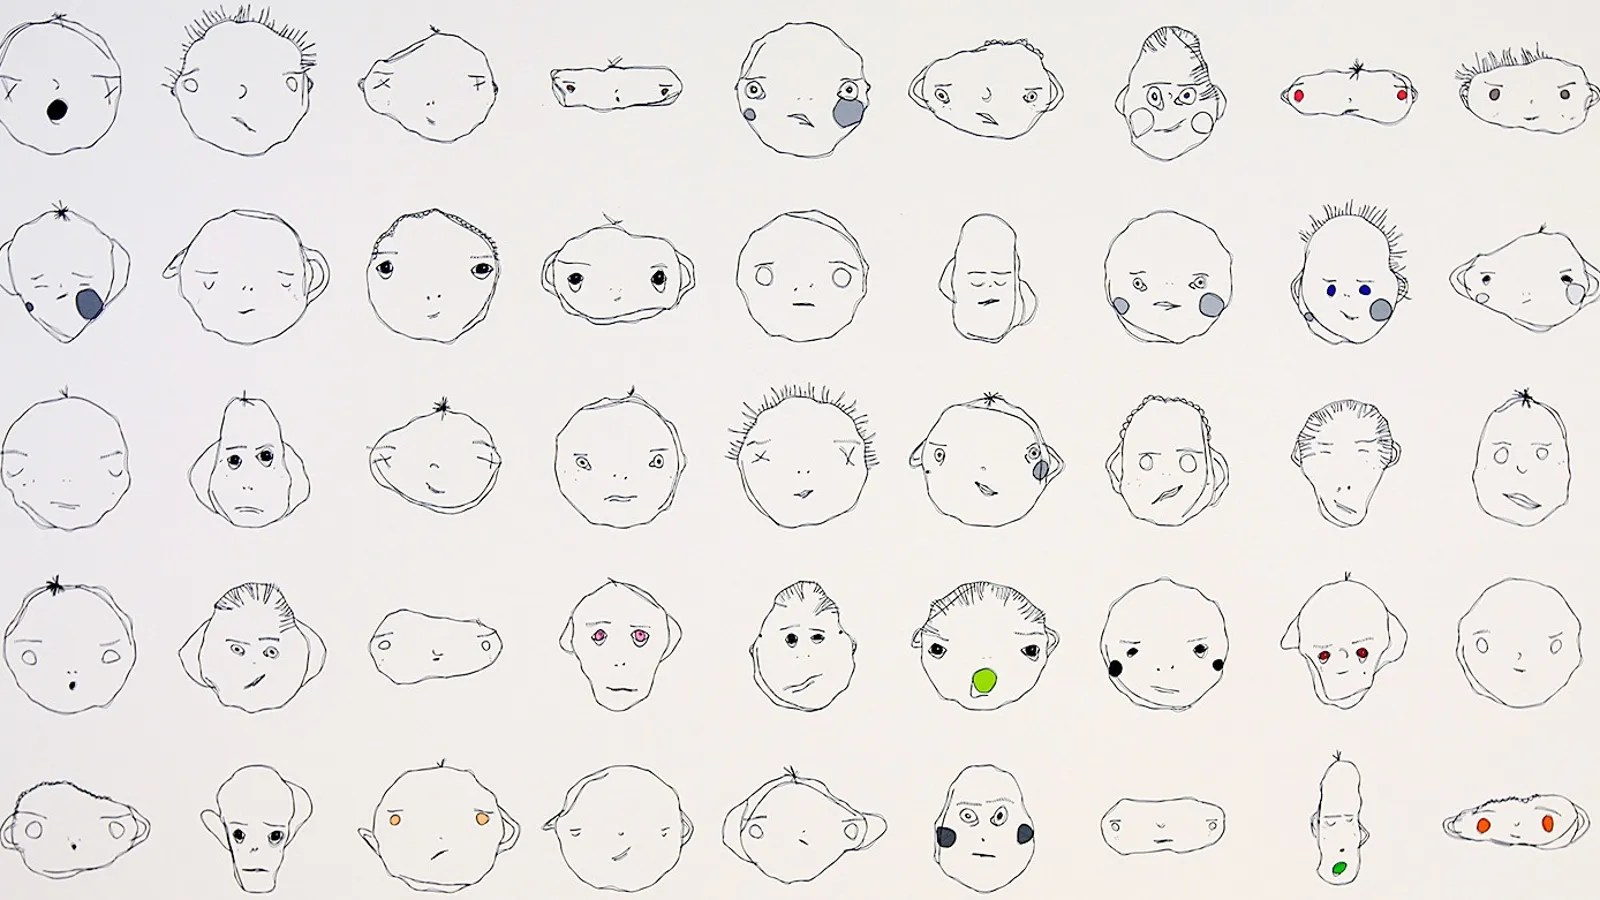 These Weird Cartoon Faces Are All Drawn By an Algorithm